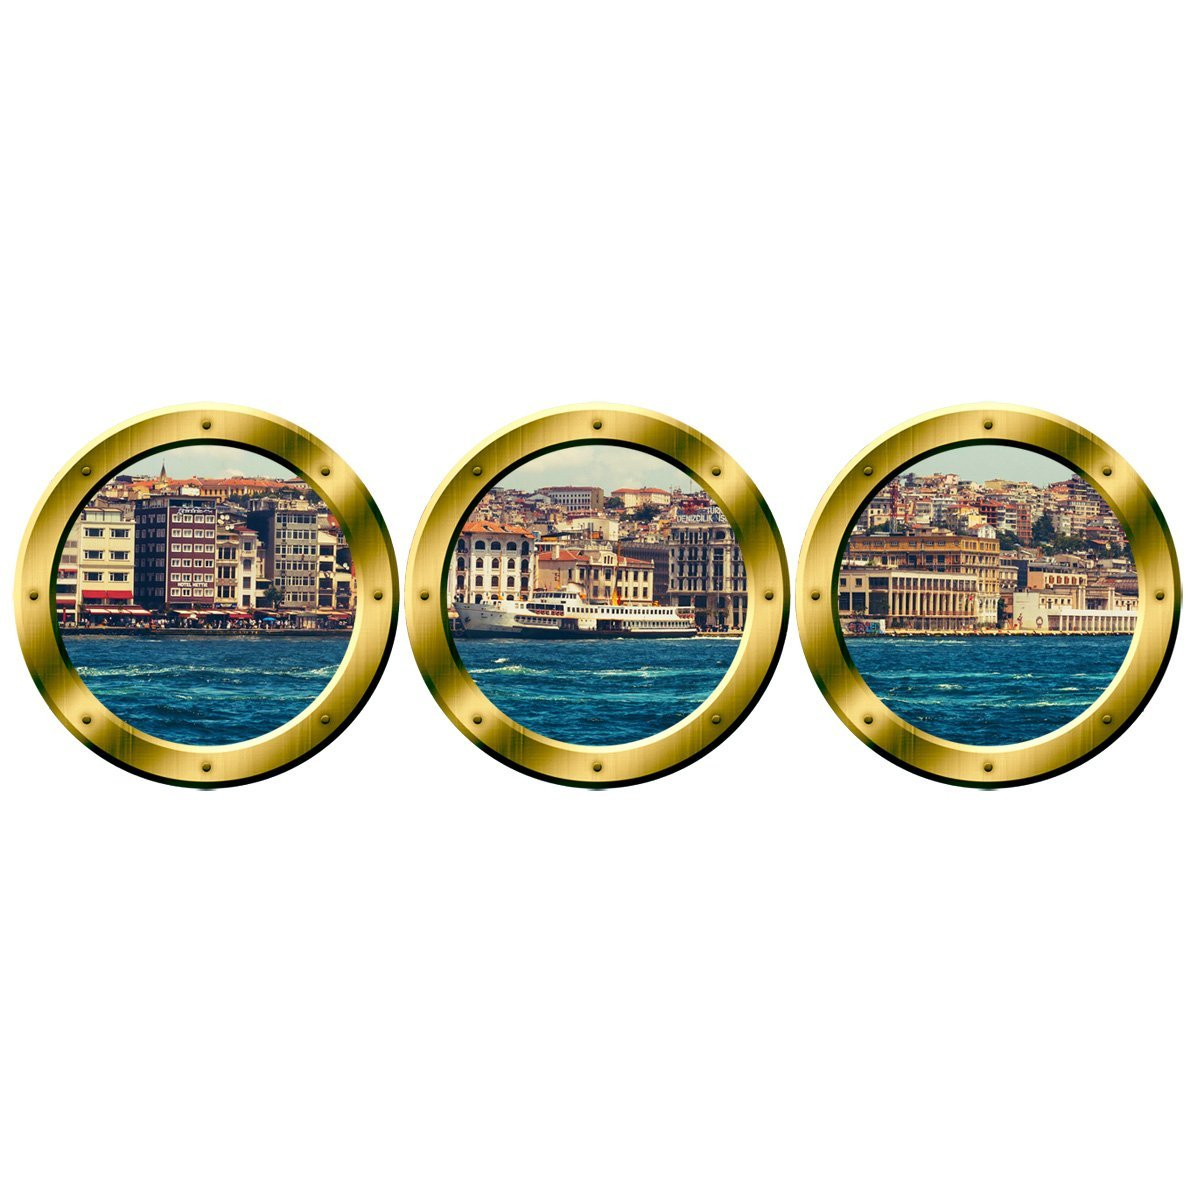 image relating to Printable Wall Murals named VWAQ Town Skyline Wall Murals, Porthole Cityscape Stickers - Peel Adhere Decals - VWAQ-SPW5 (20\